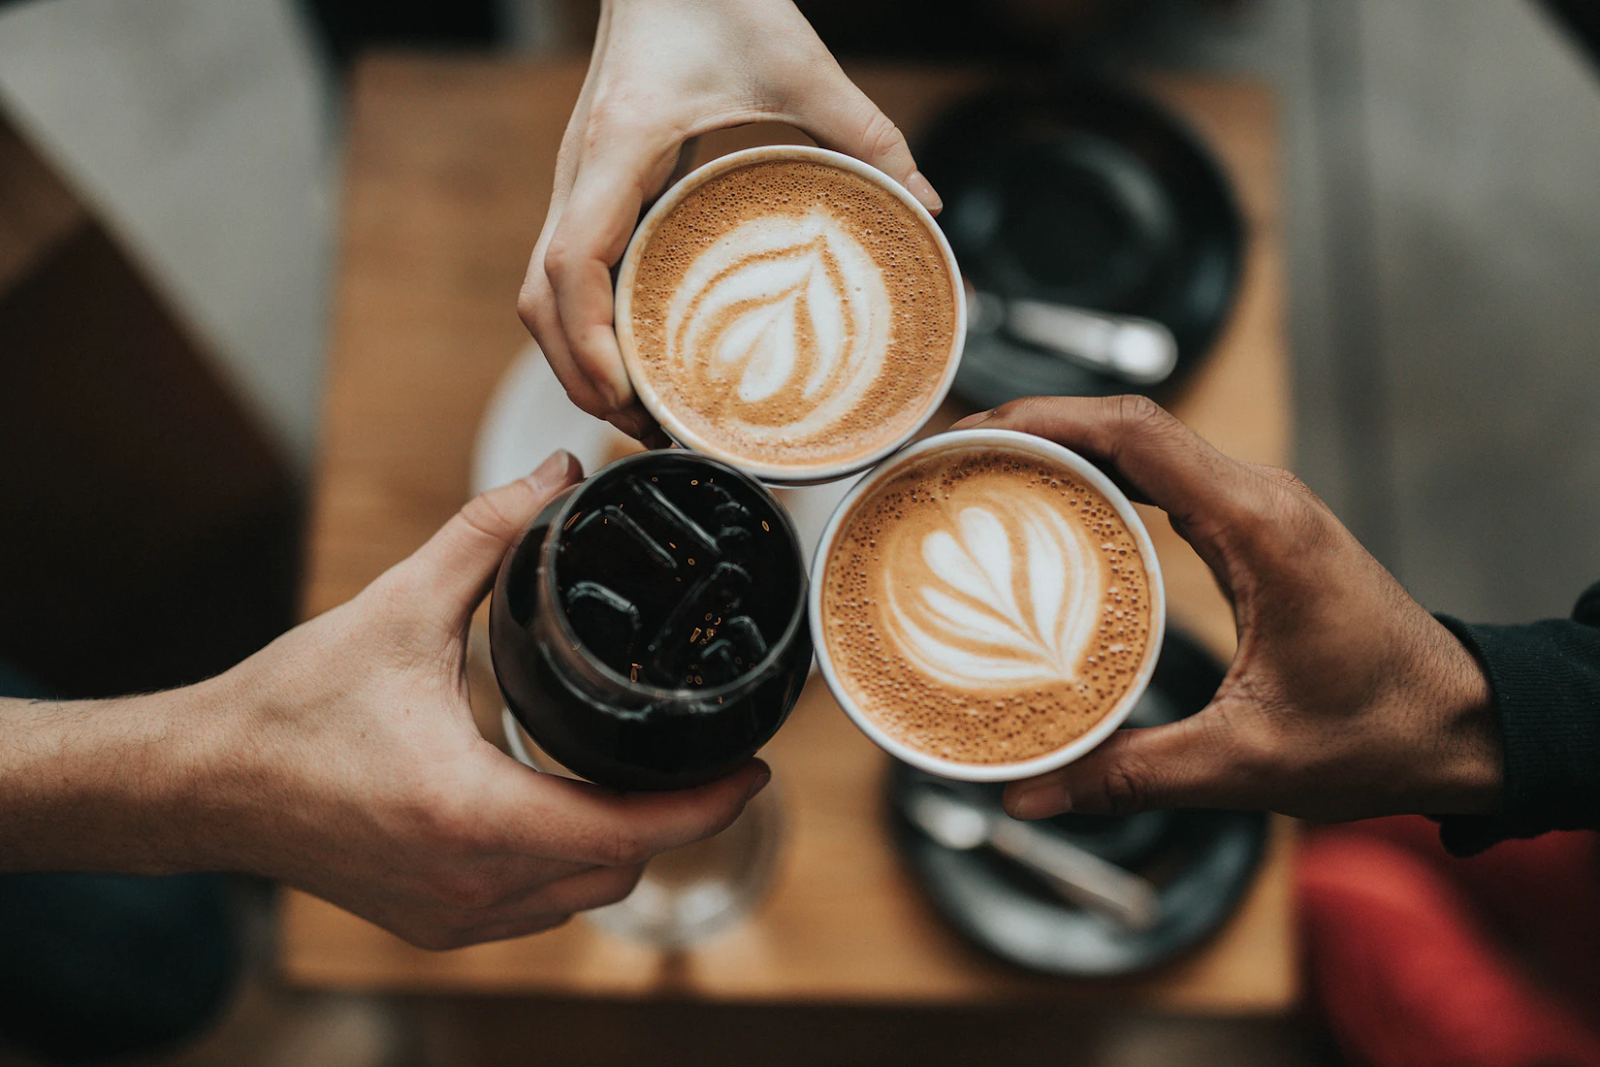 An image of three hands clinking three cups of coffee together in cheers, two hot with latte art and one iced.